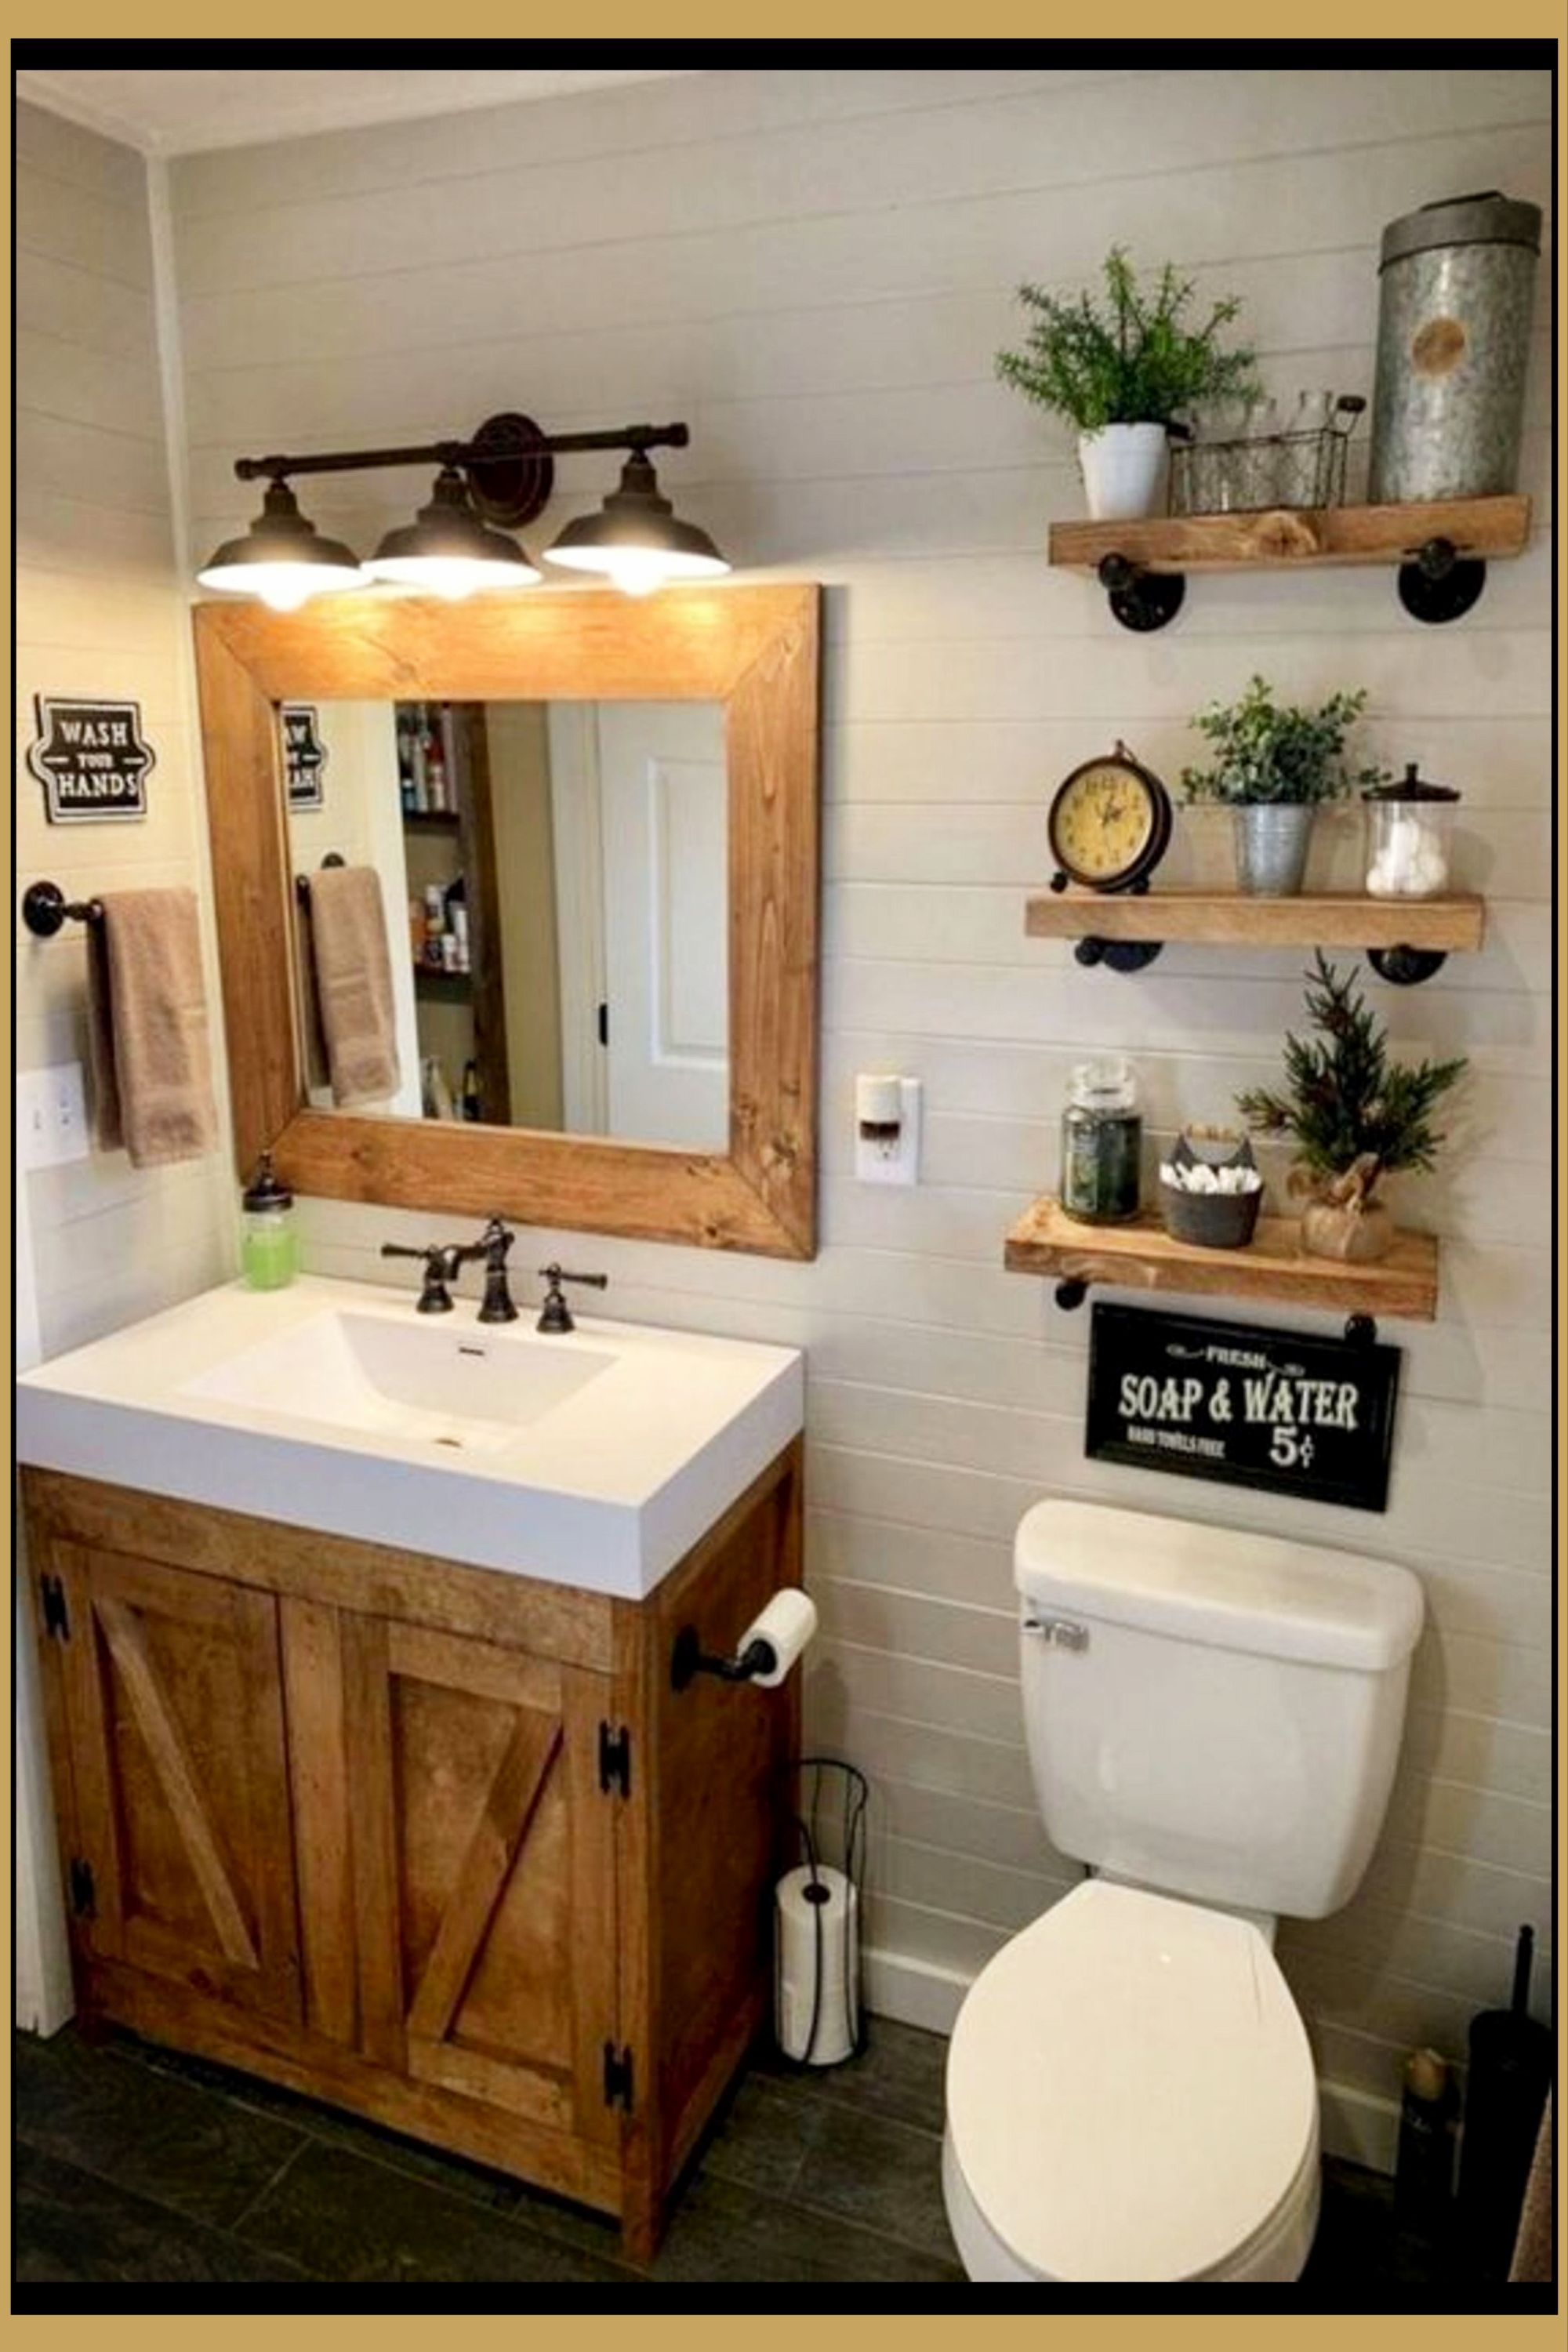 100+ Best Country Outhouse Bathroom Decor Ideas images in 2020 | bathroom  decor, rustic bathrooms, outhouse bathroom